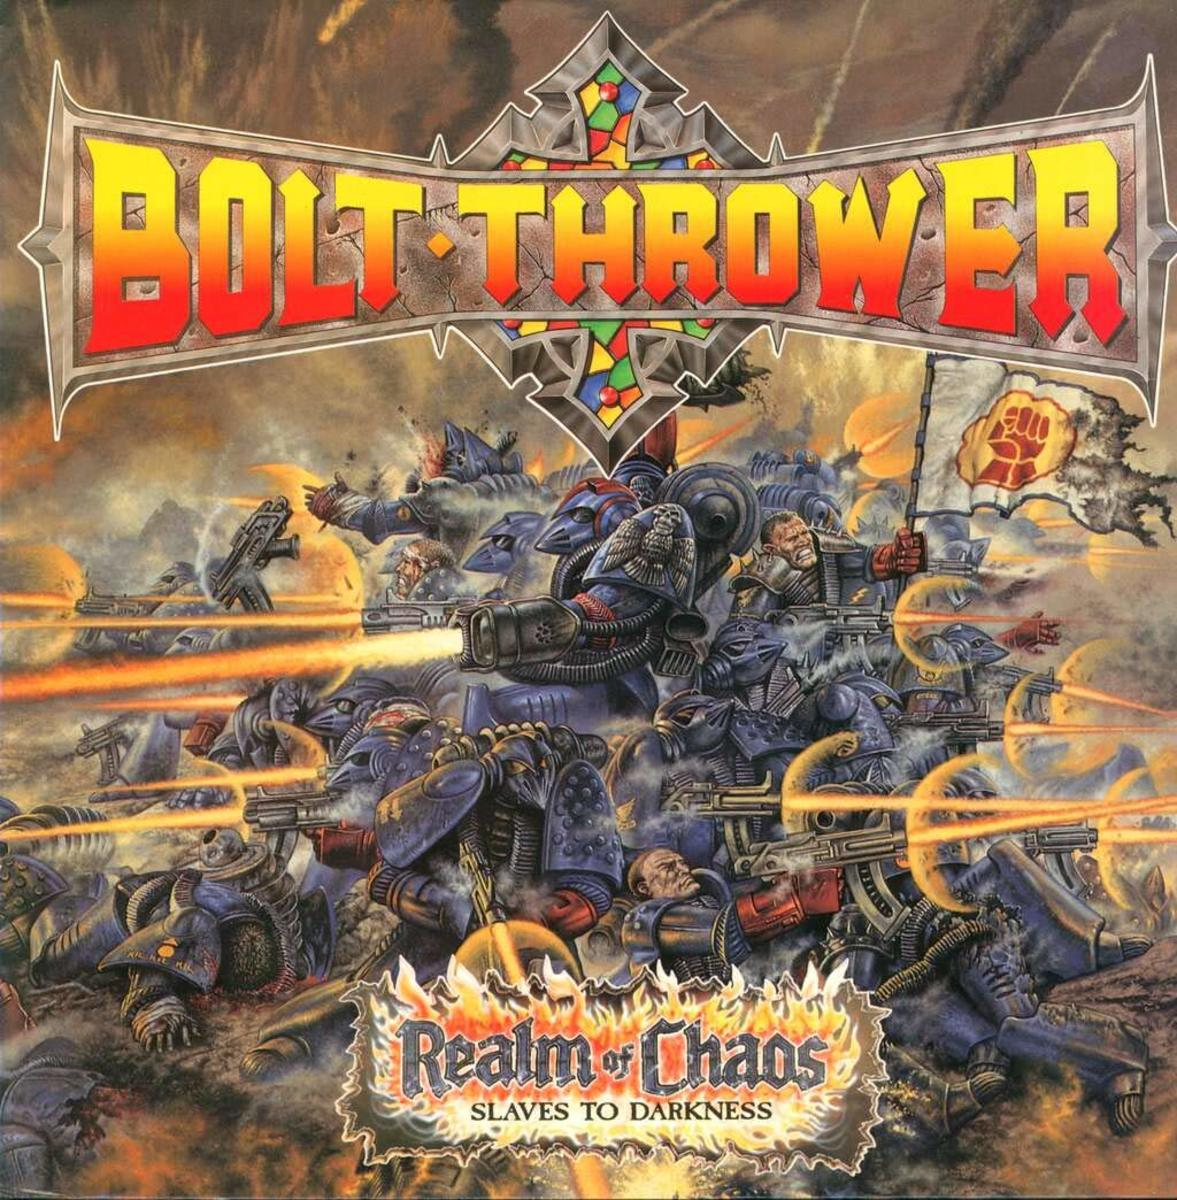 album-review-realm-of-chaos-slaves-to-darkness-by-bolt-thrower